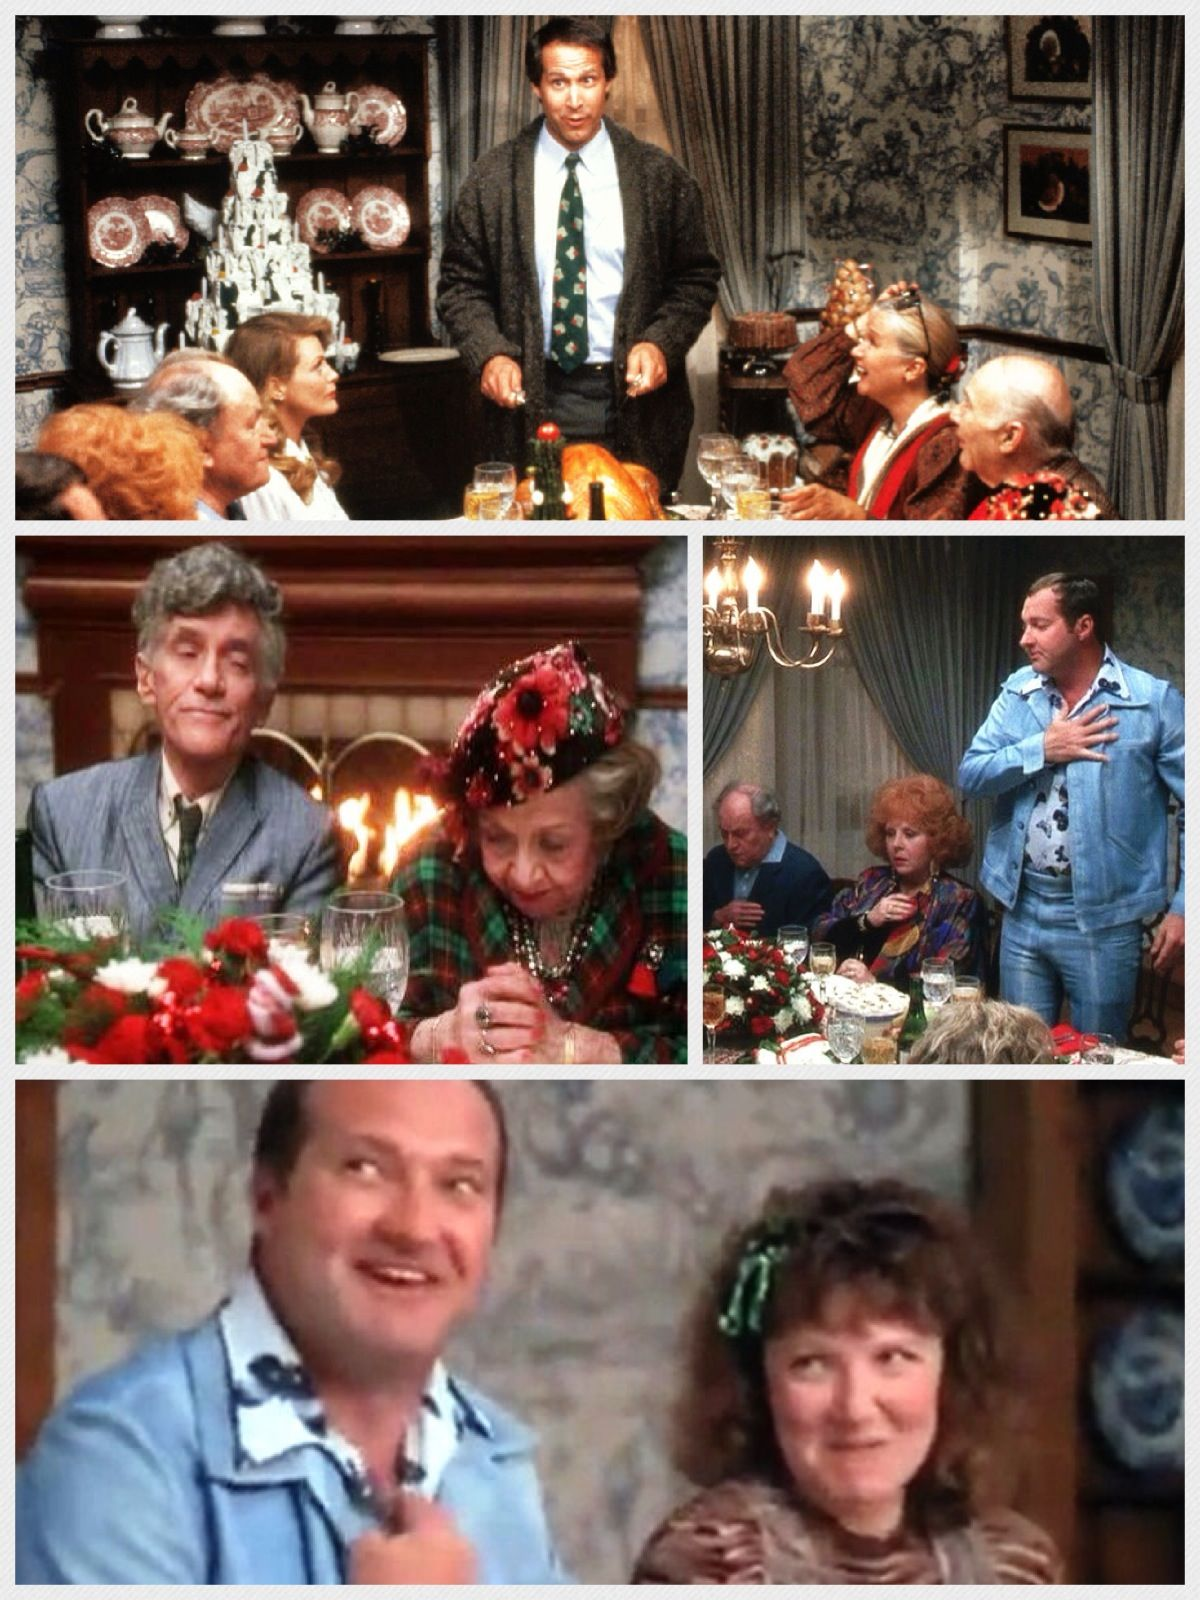 National Lampoon's Christmas Vacation 1989